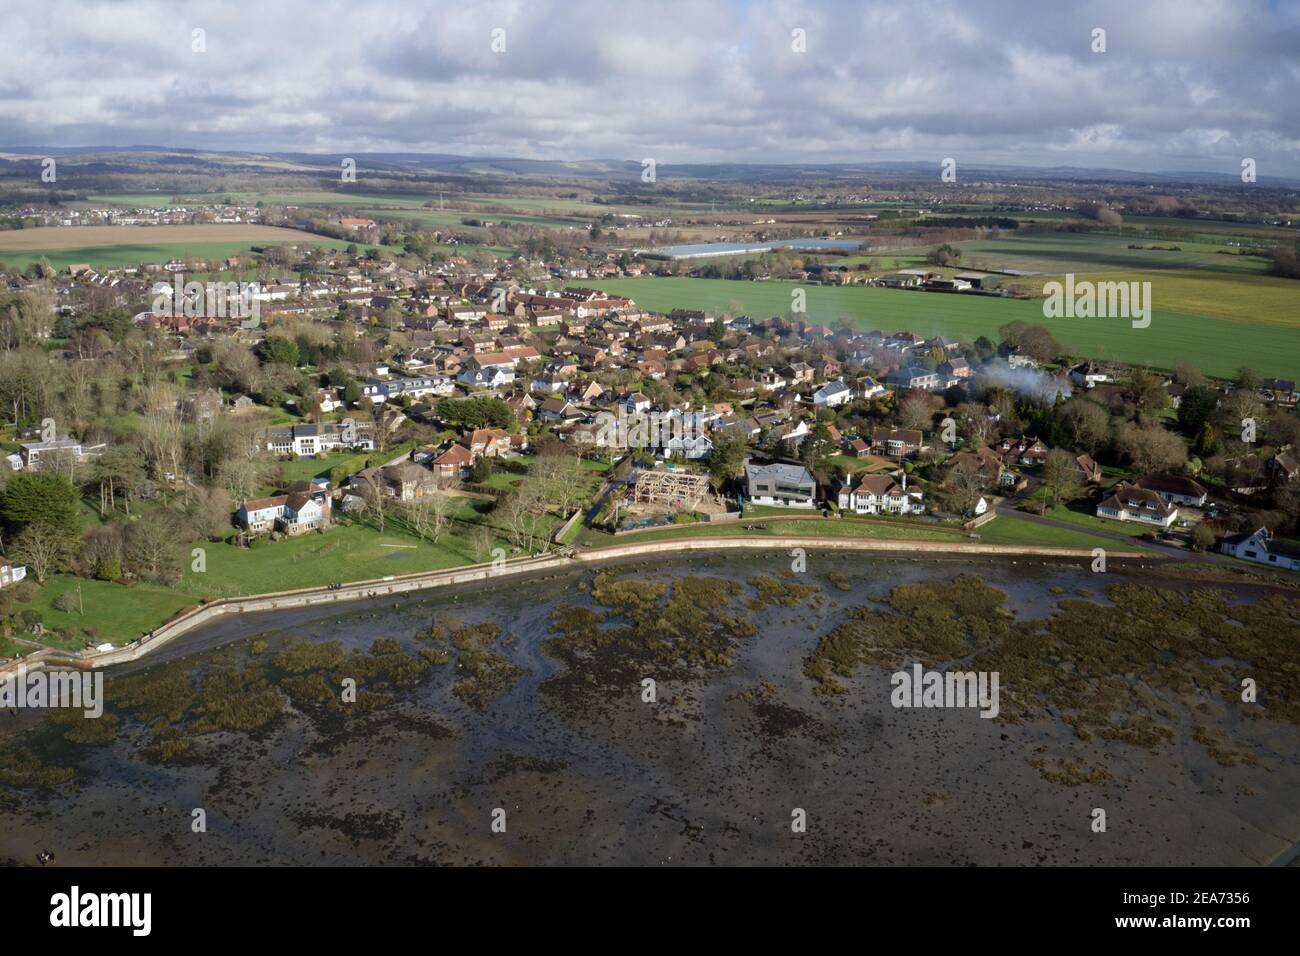 Aerial view of the yachts and old English Cottages at Bosham in Southern England. Stock Photo